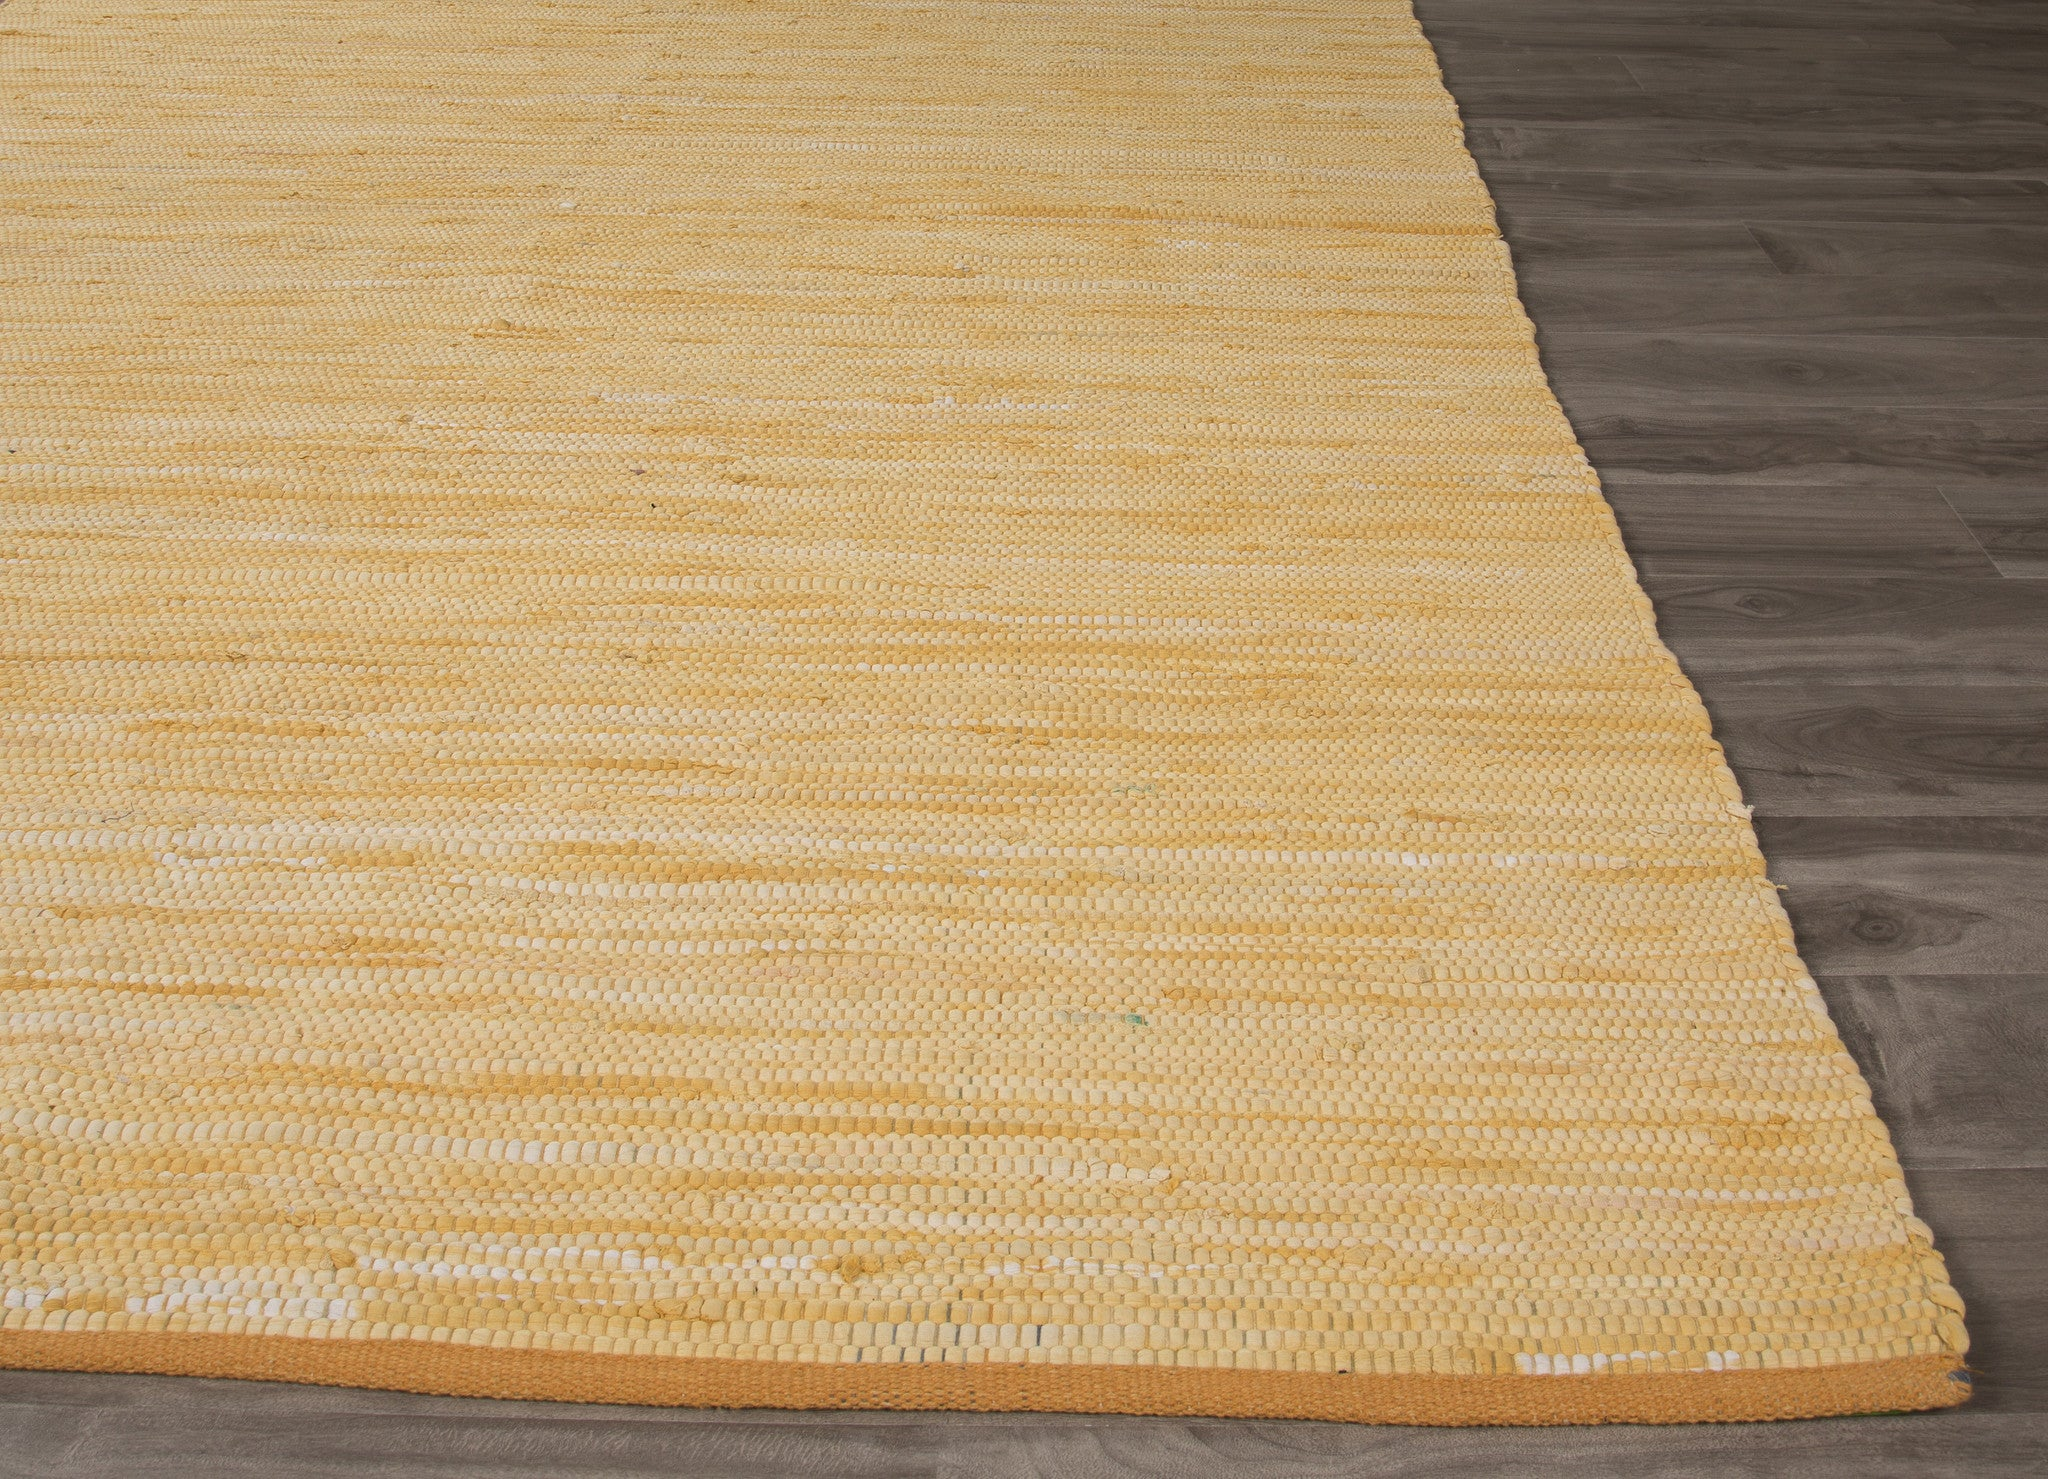 Jaipur Rugs Flatweave Solid Pattern Yellow Gold Cotton